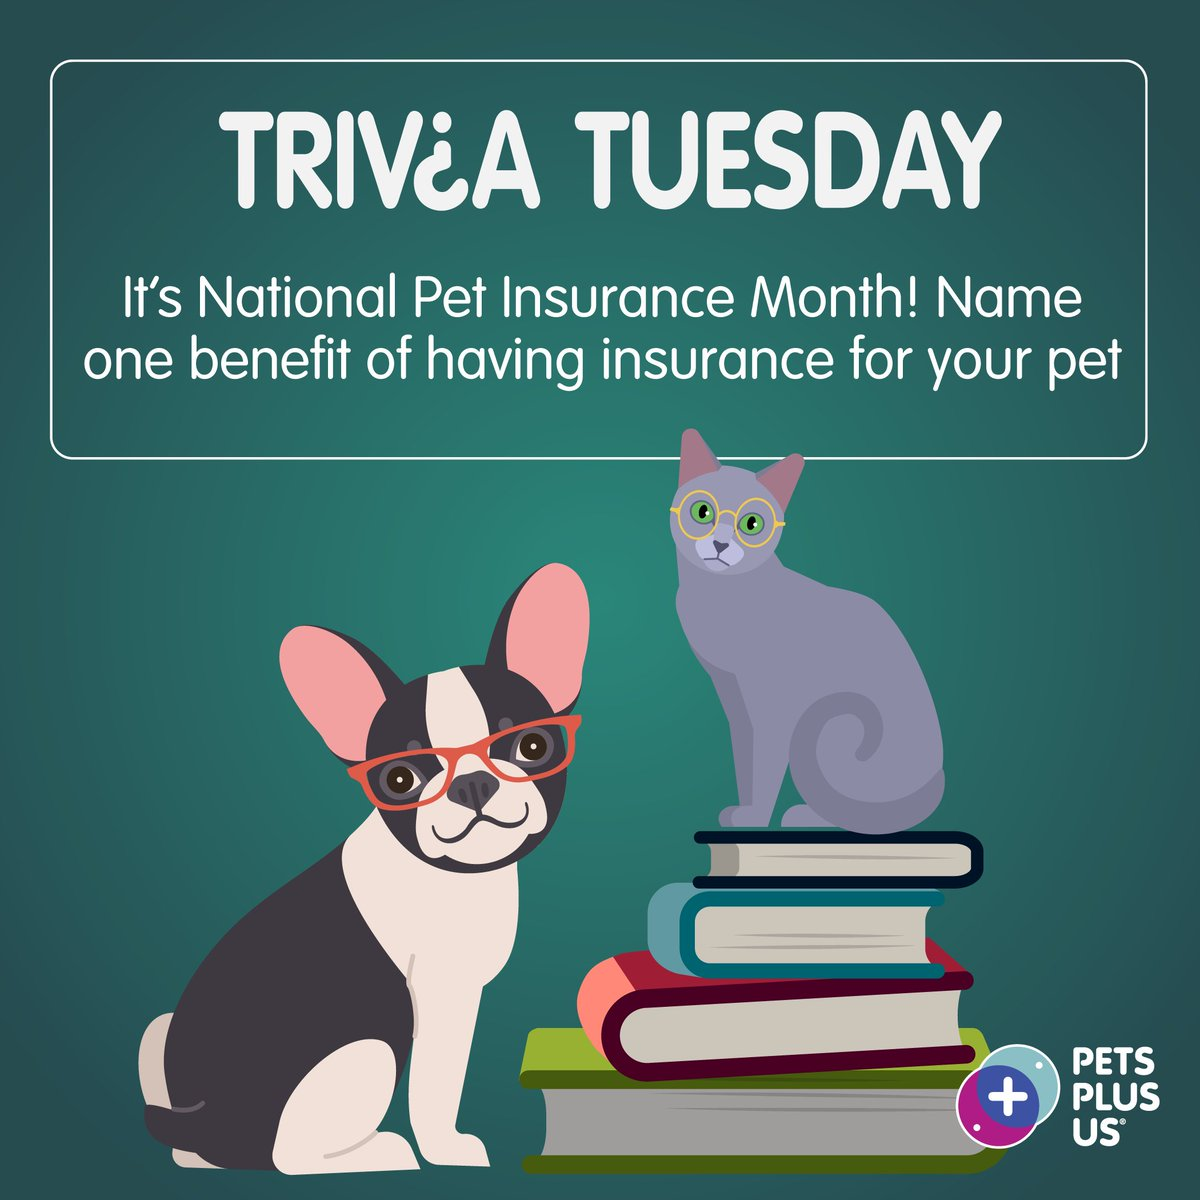 #Win a $25 PetSmart GC! Answer the question & RT to enter our #TriviaTuesday Giveaway. Open to CND residents only. Contest ends at 11:59PM EST. Note, this contest is in no way sponsored, endorsed or administered by, or associated with, Facebook, Instagram and/or Twitter. https://t.co/MoXTzrg6AB